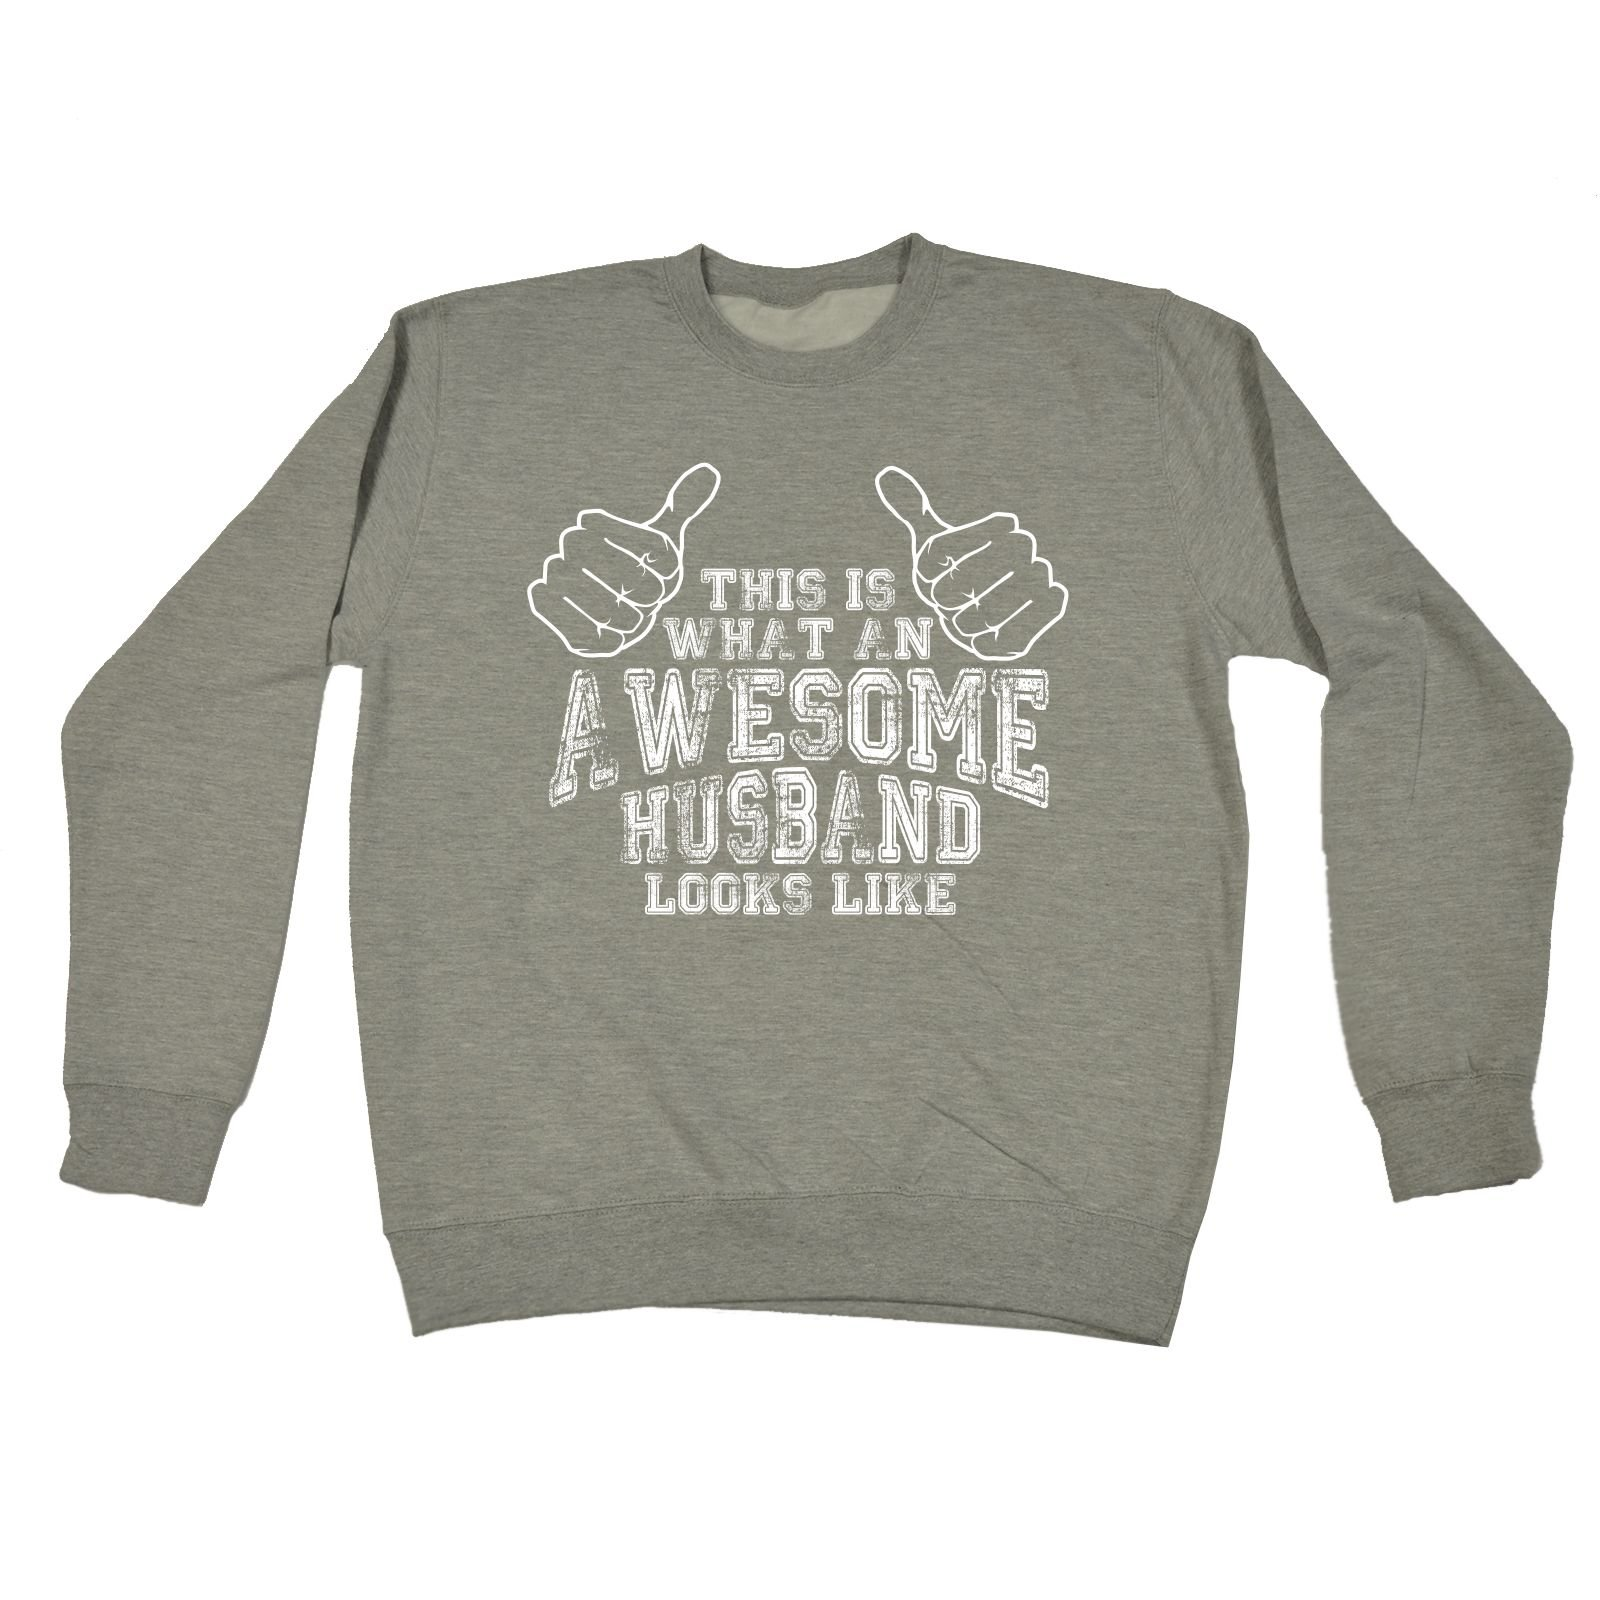 123t This Is What An Awesome Husband Looks Like Hubby Partner Married Man Marriage Wedding Newly Relationship Funny Sarcasm Humour Novelty Birthday Gift Christmas Present Ideas SWEATSHIRT by 123t (Image #1)